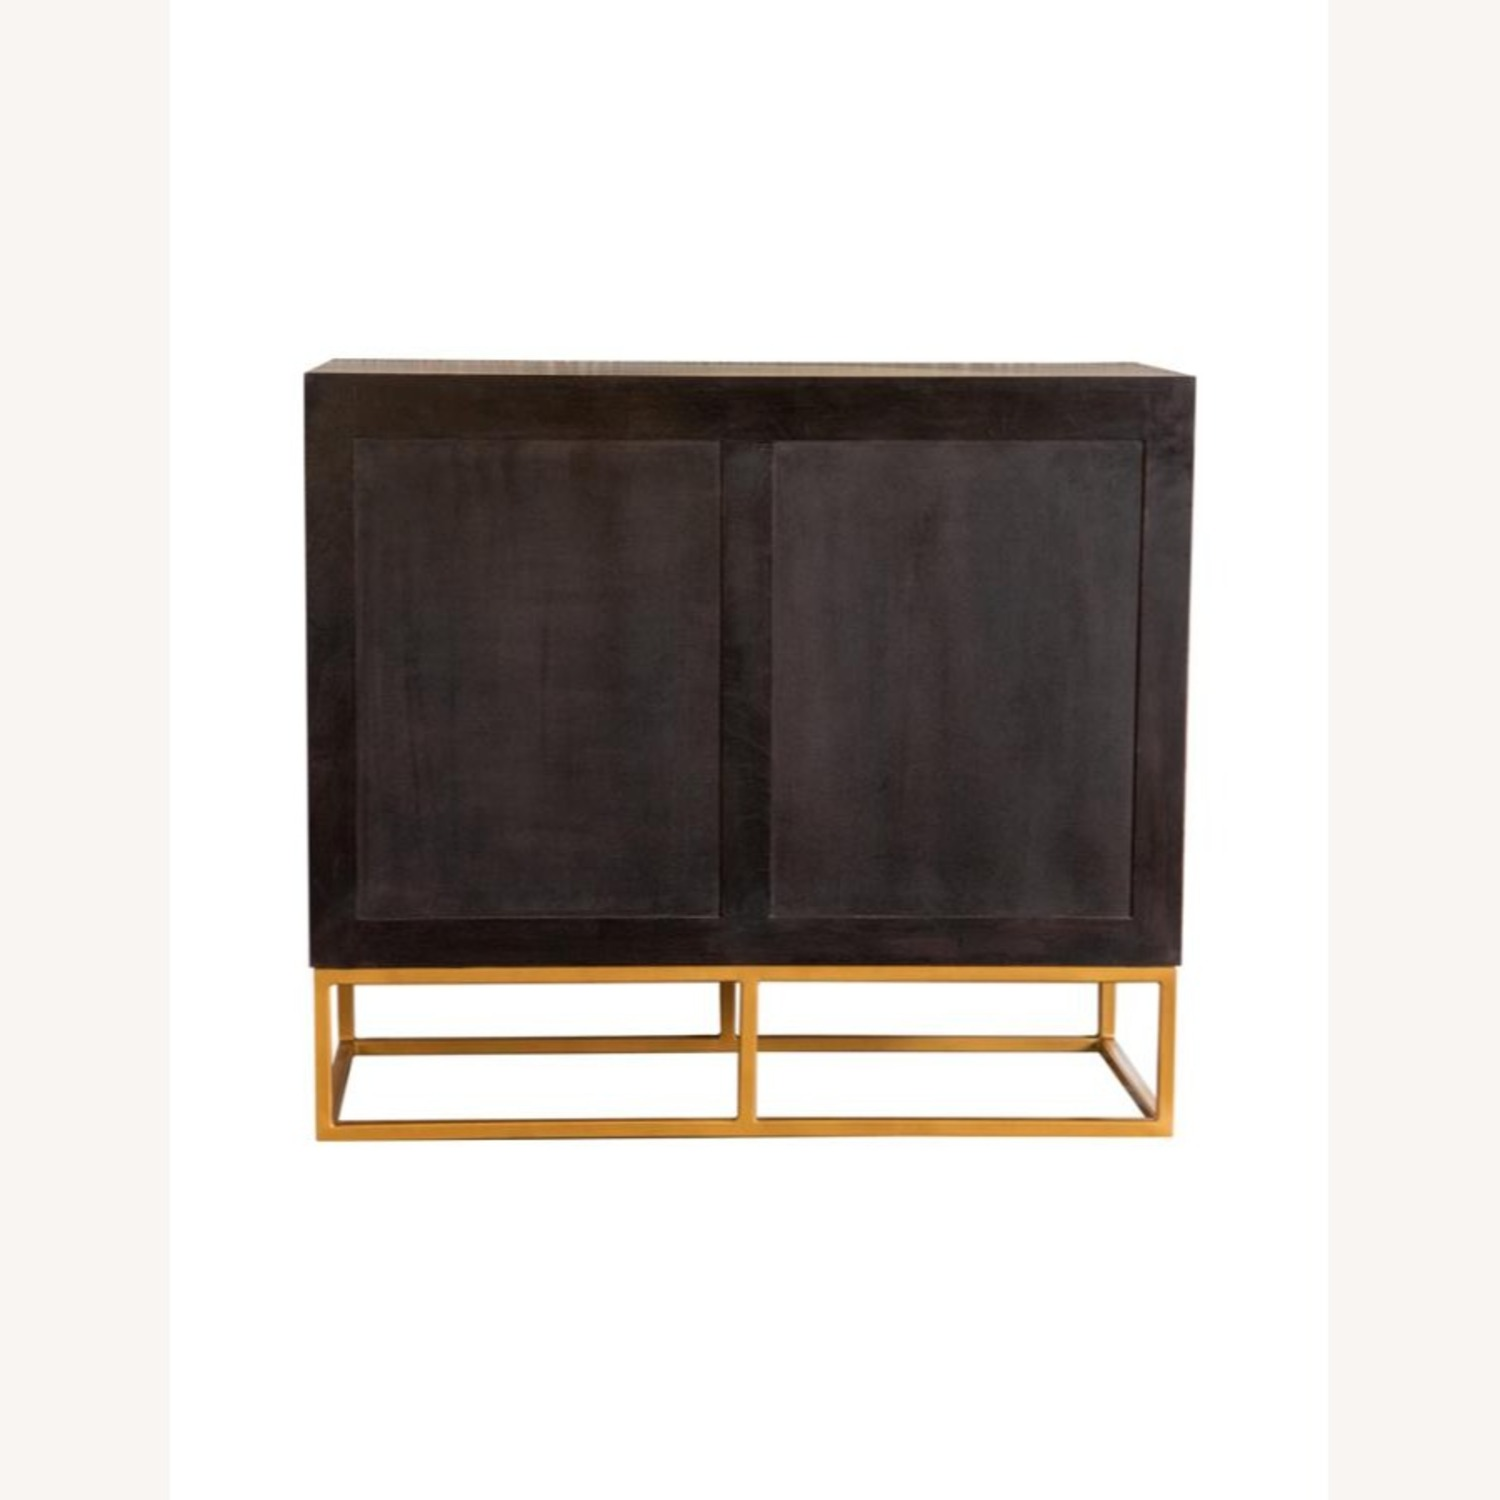 Accent Cabinet In Black Walnut & Gold Finish - image-2